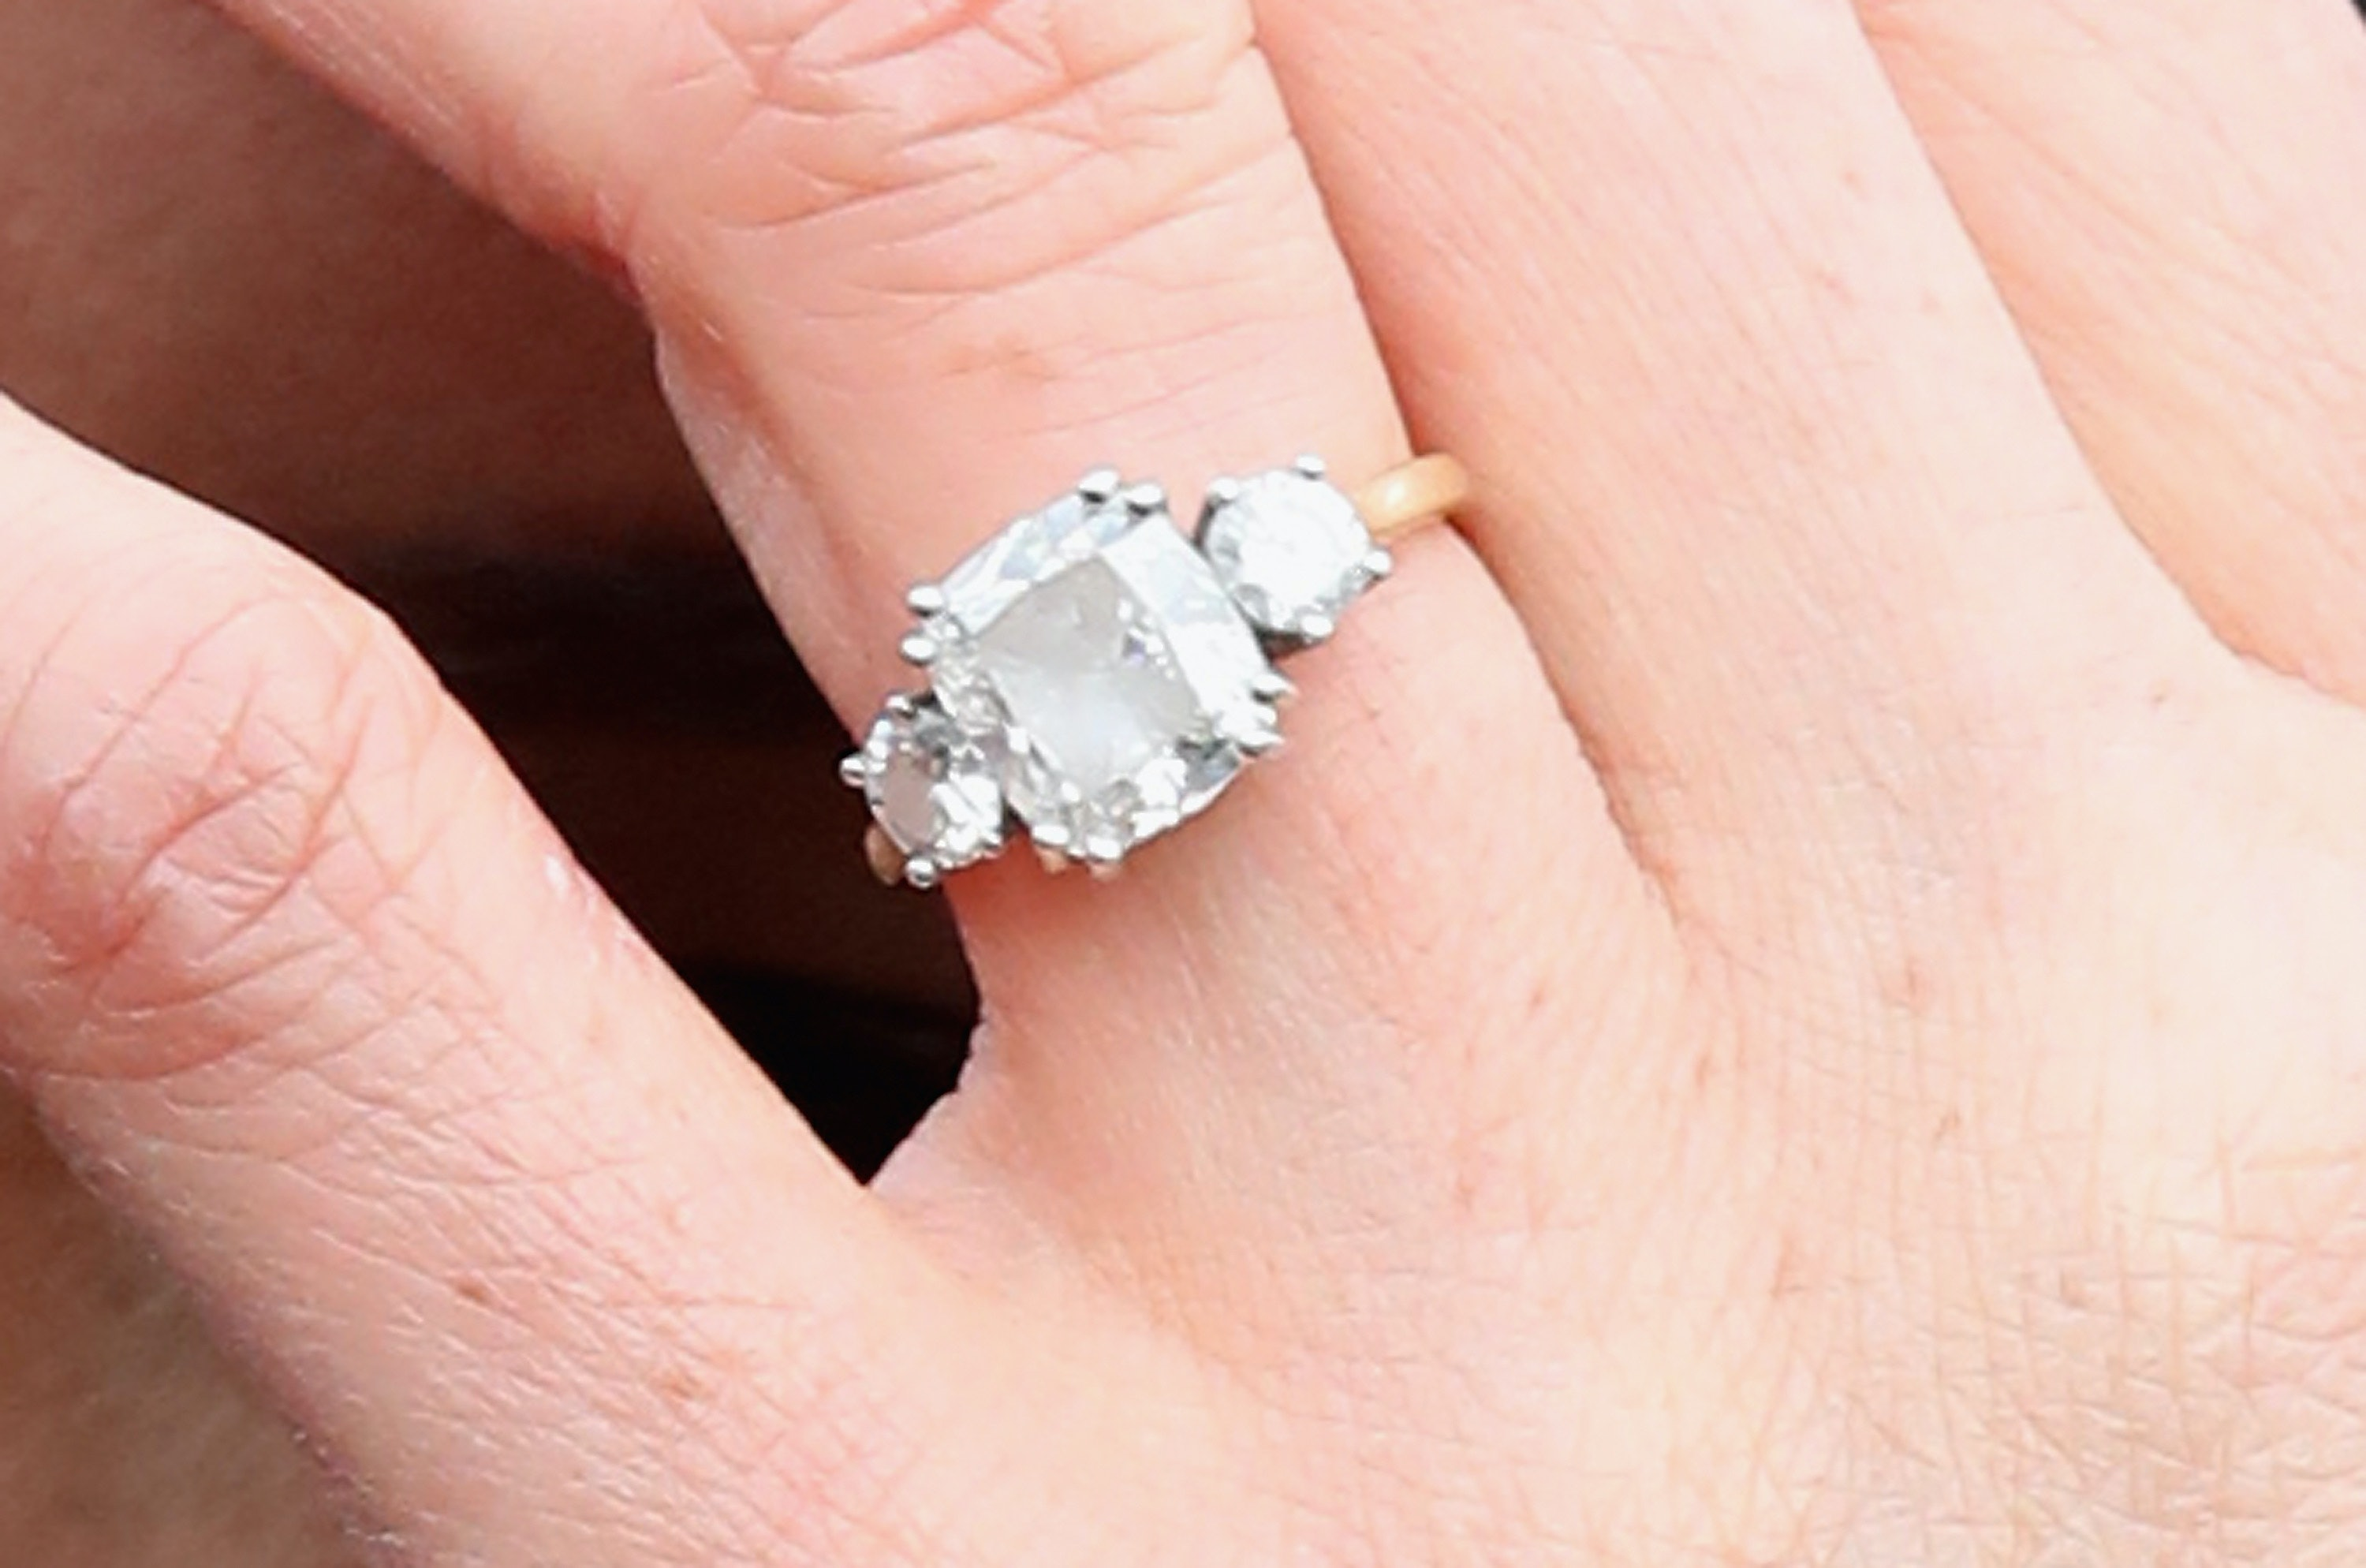 Meghan Markle Wedding Ring.Meghan Markle S Engagement Ring Update Includes Paved Diamonds You